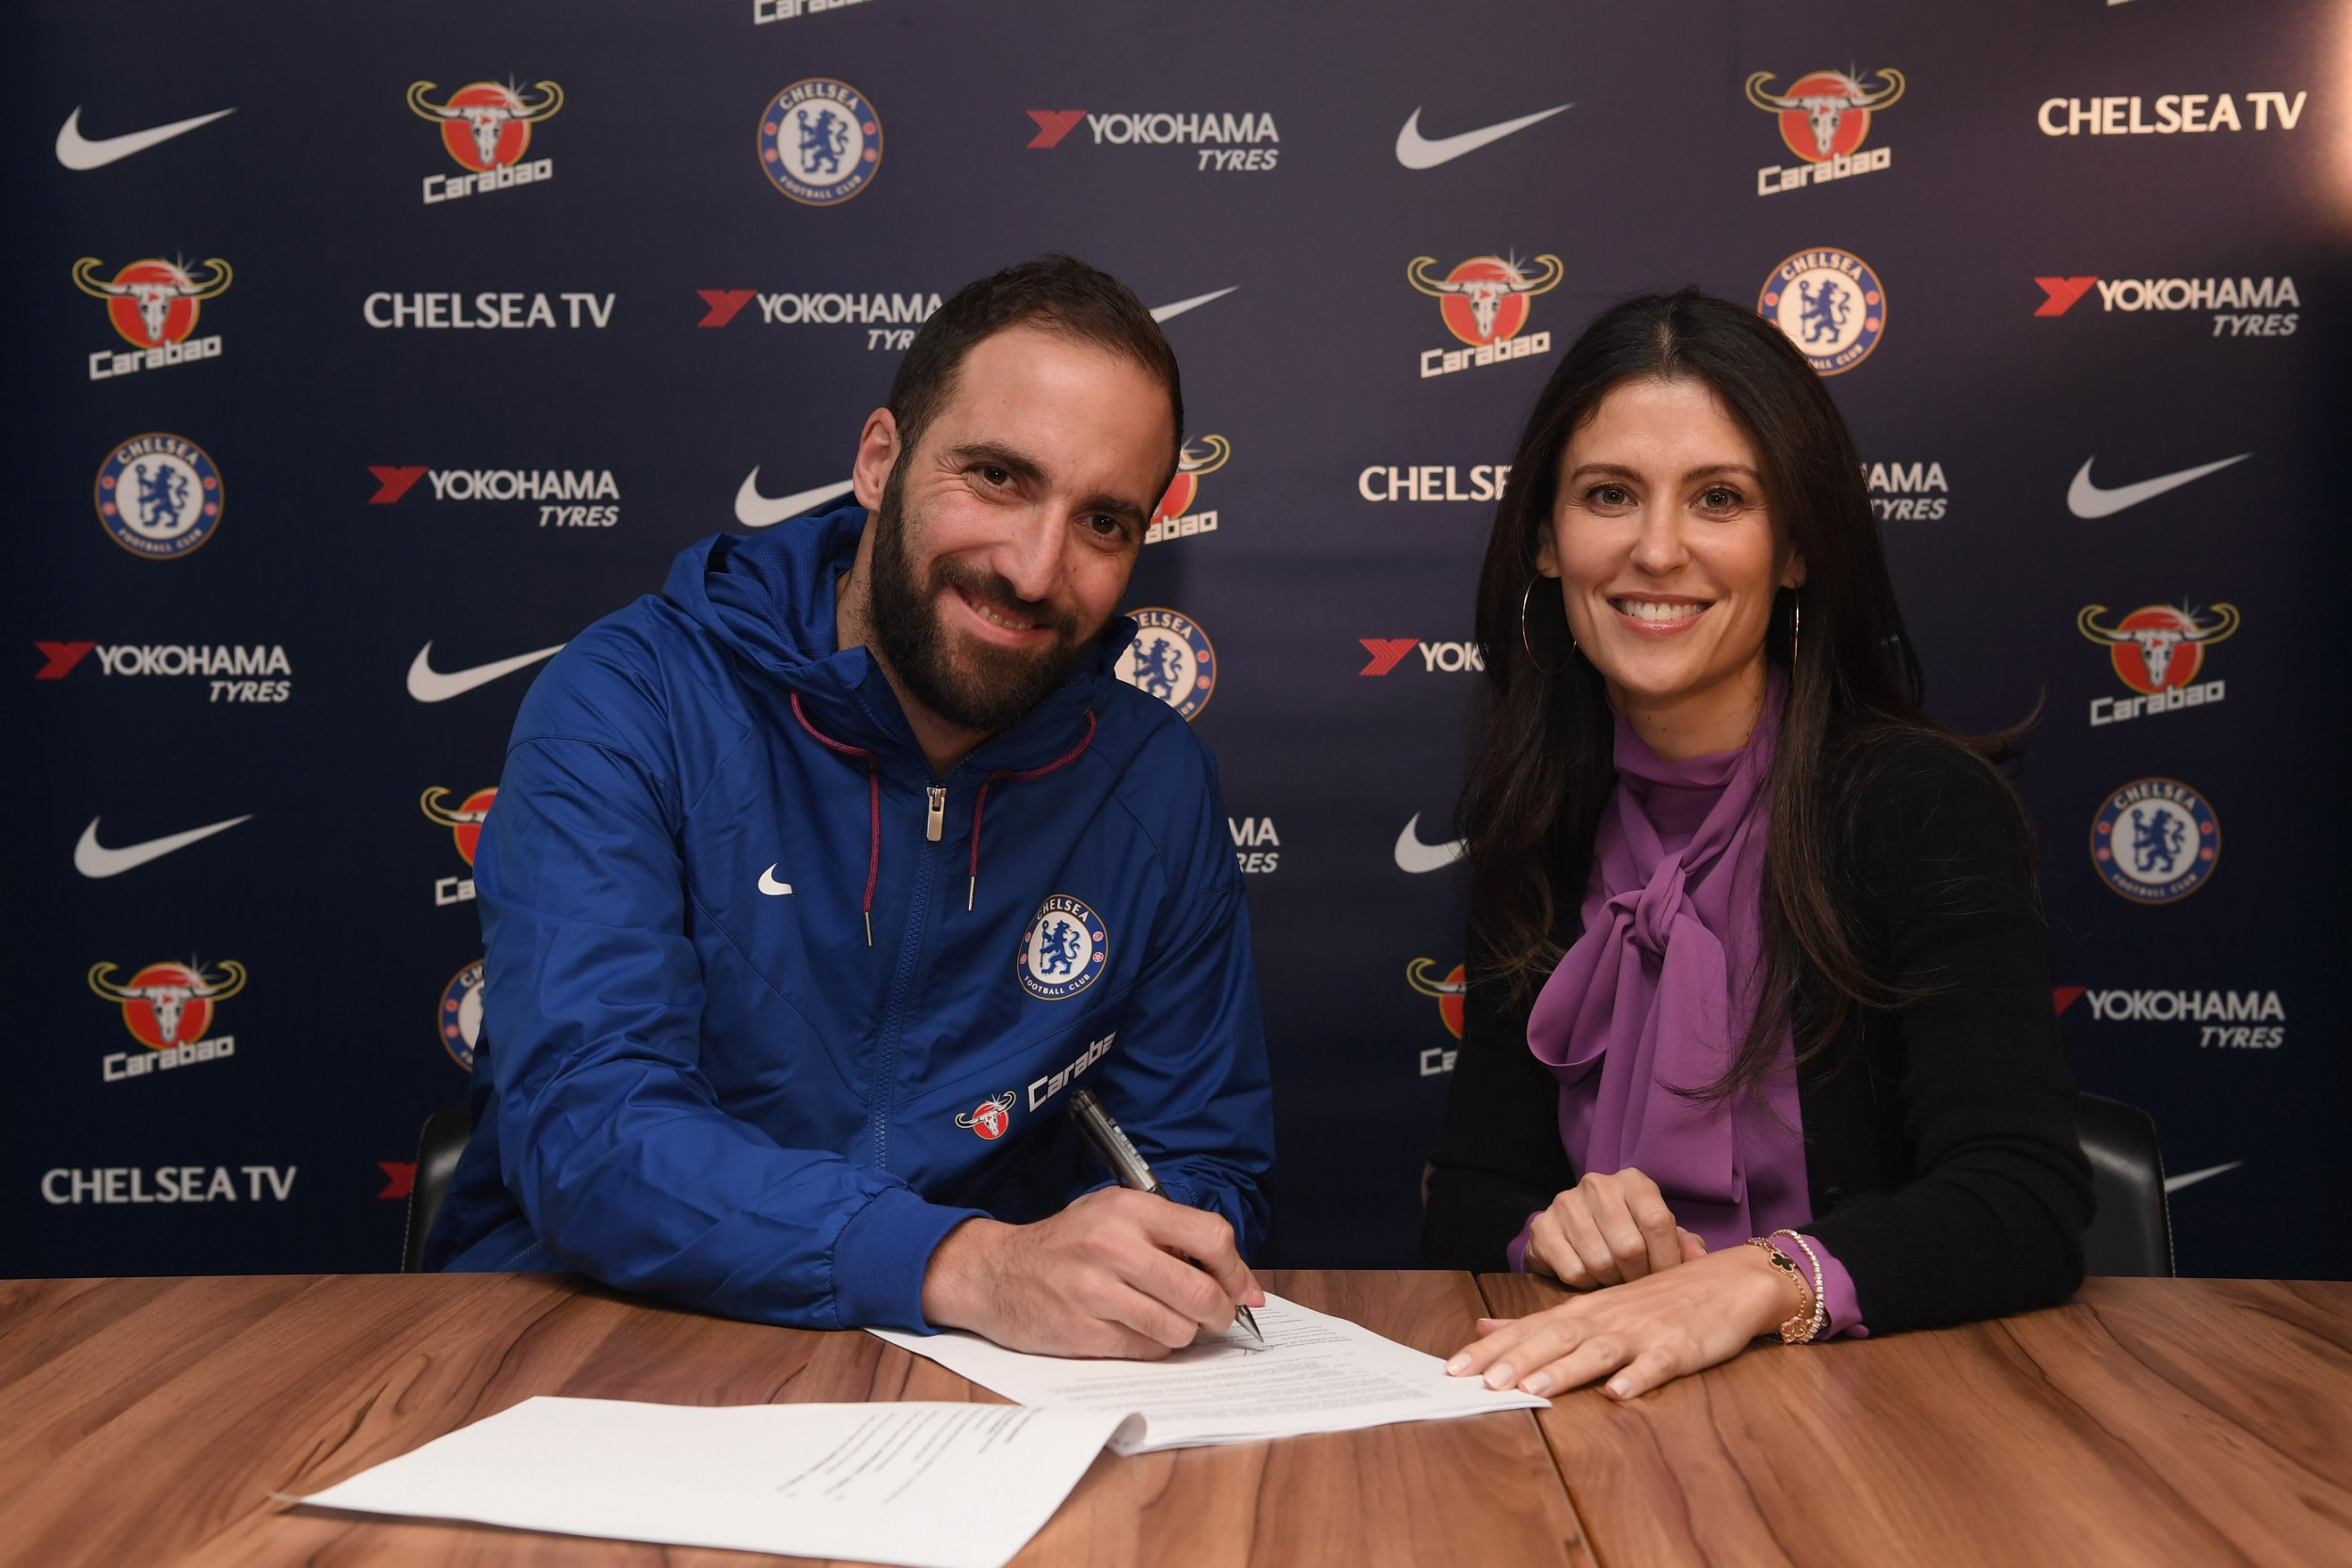 Marina Granovskaia speaks out on Chelsea's complicated deal for Gonzalo Higuain